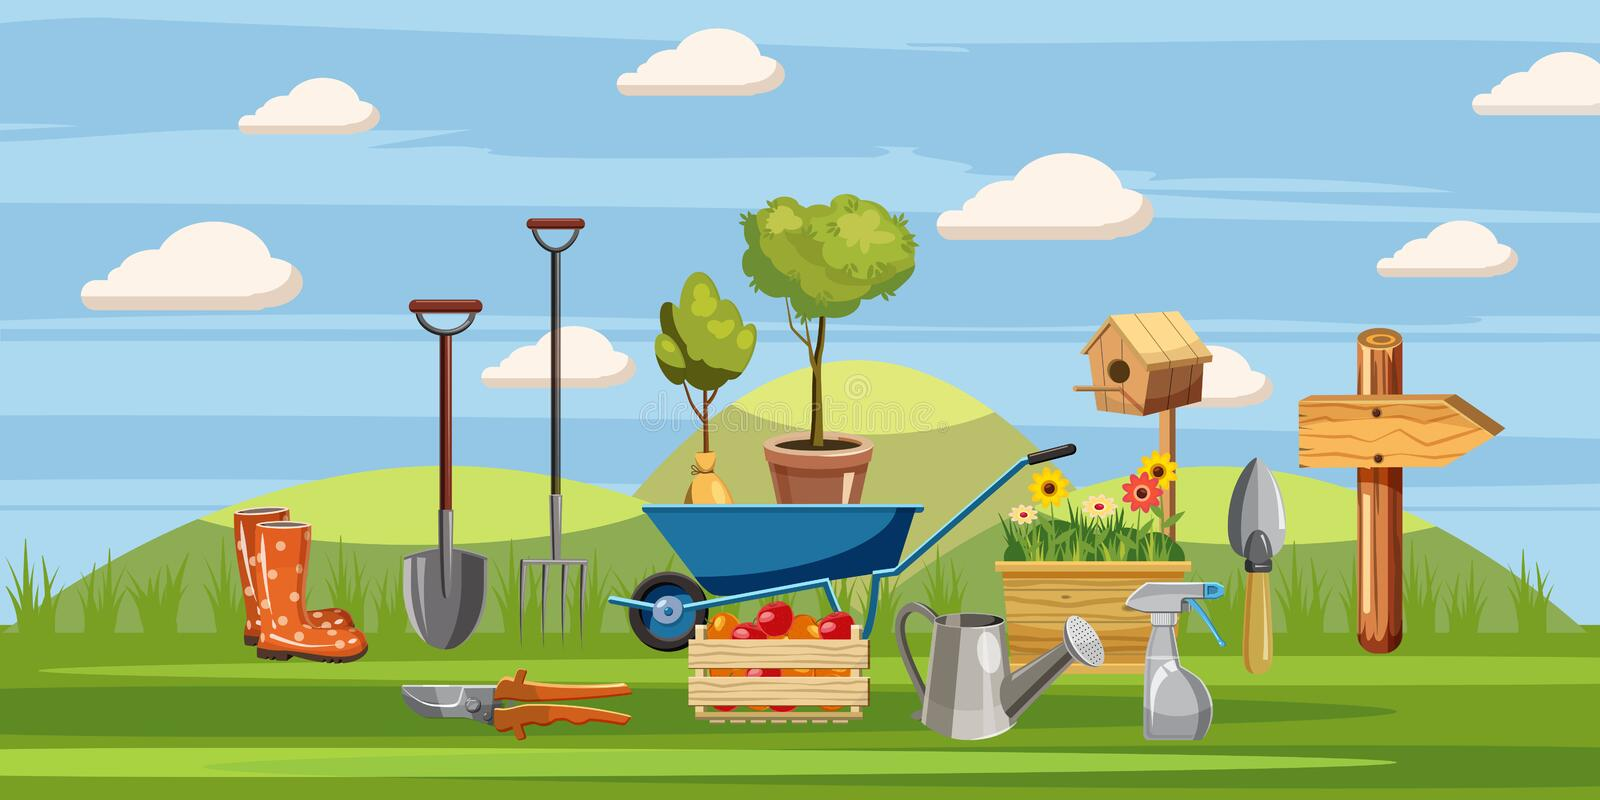 Gardener tools icons set, cartoon style vector illustration